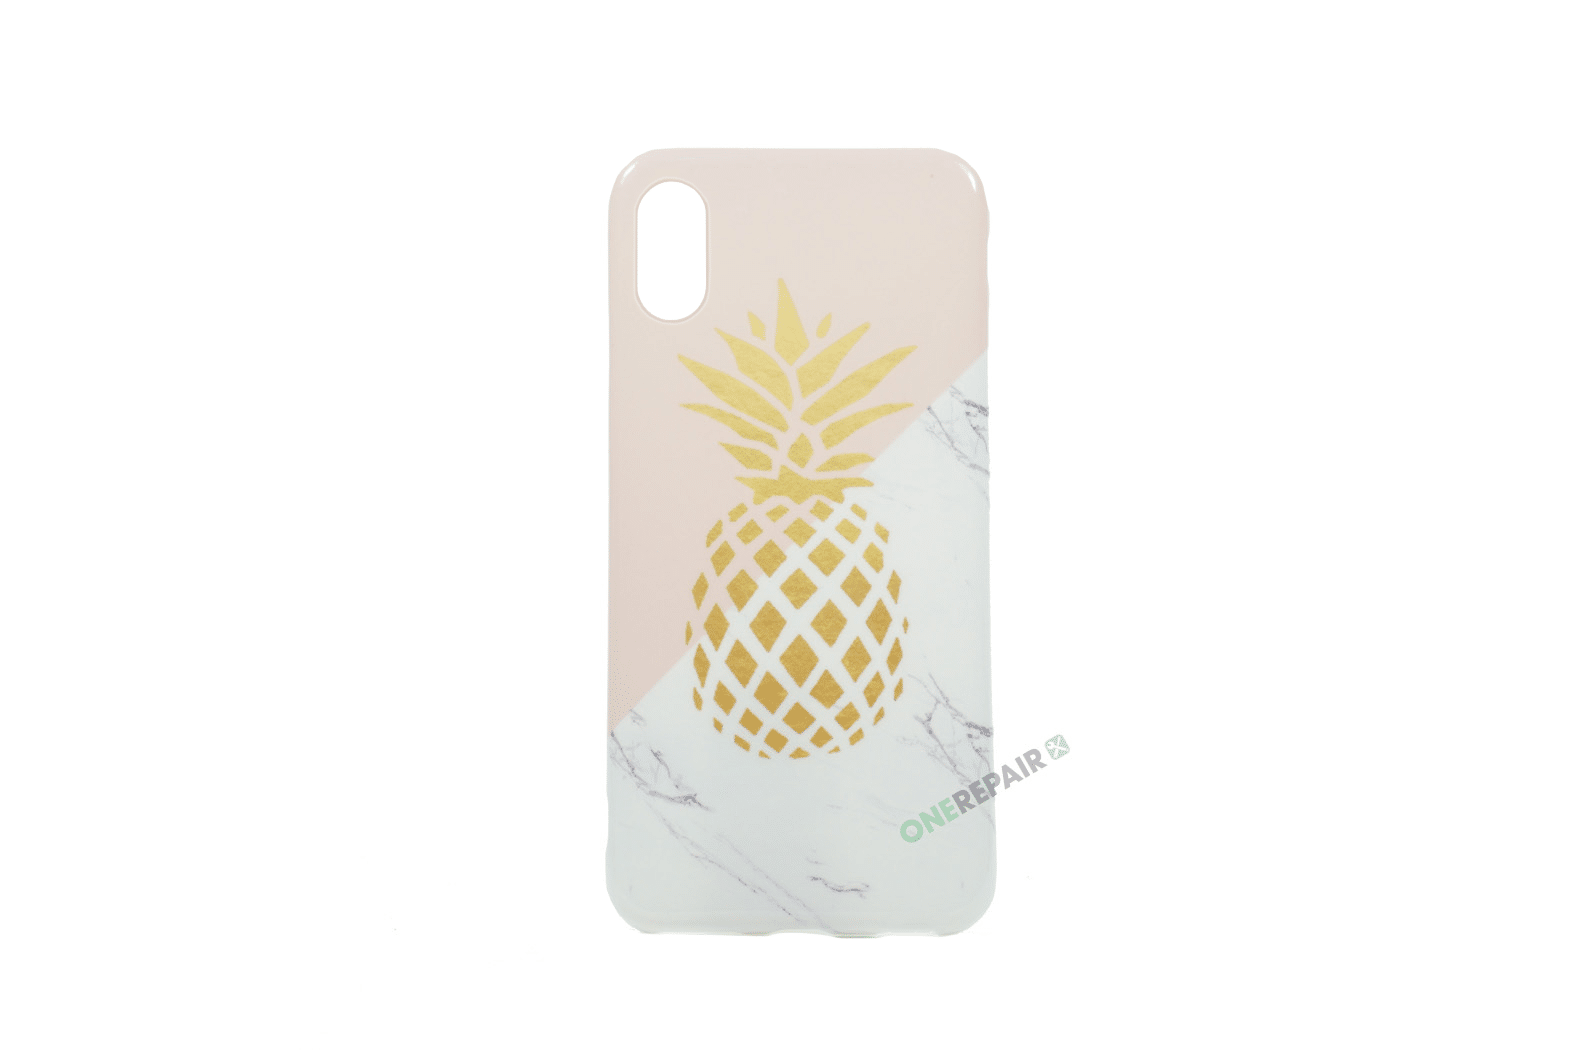 351966_iPhone_X_XS_Gummicover_Ananas_Moenster_Cover_Lyseroed_Guld_Marmor_OneRepair_00001